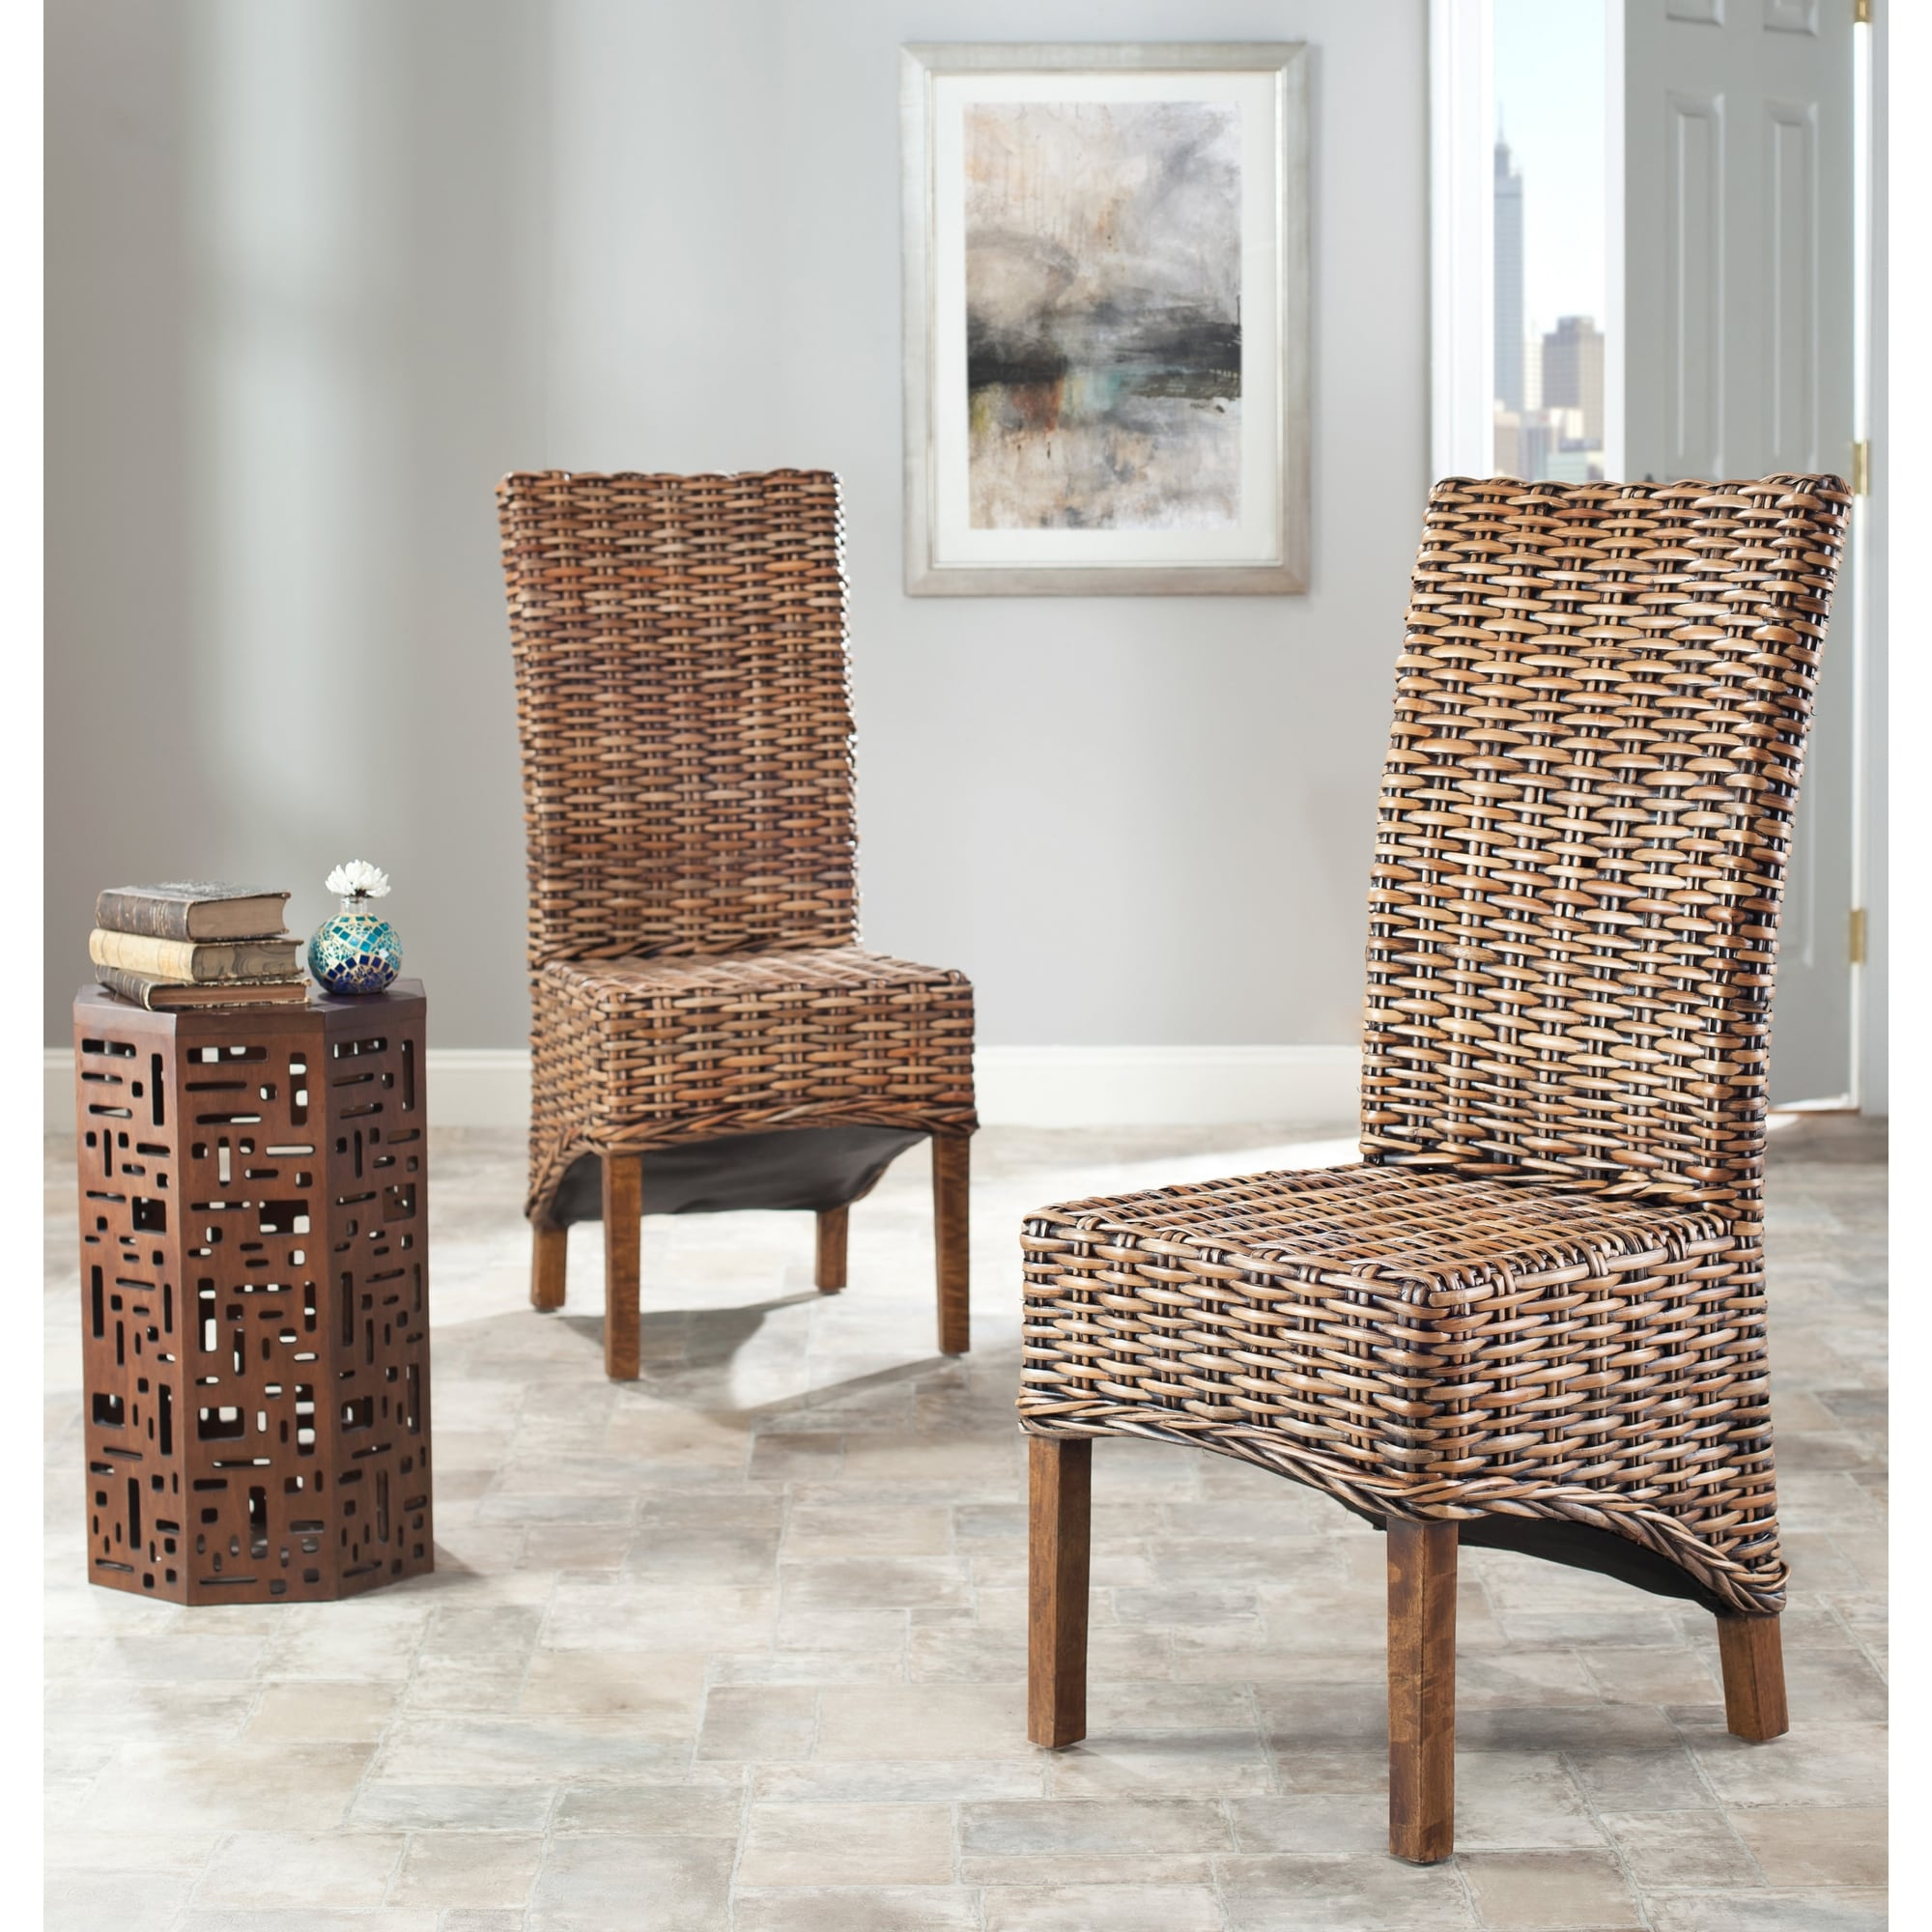 Safavieh Dining Rural Woven St Thomas Isla Wicker Brown High Back Dining Chairs Set Of 2